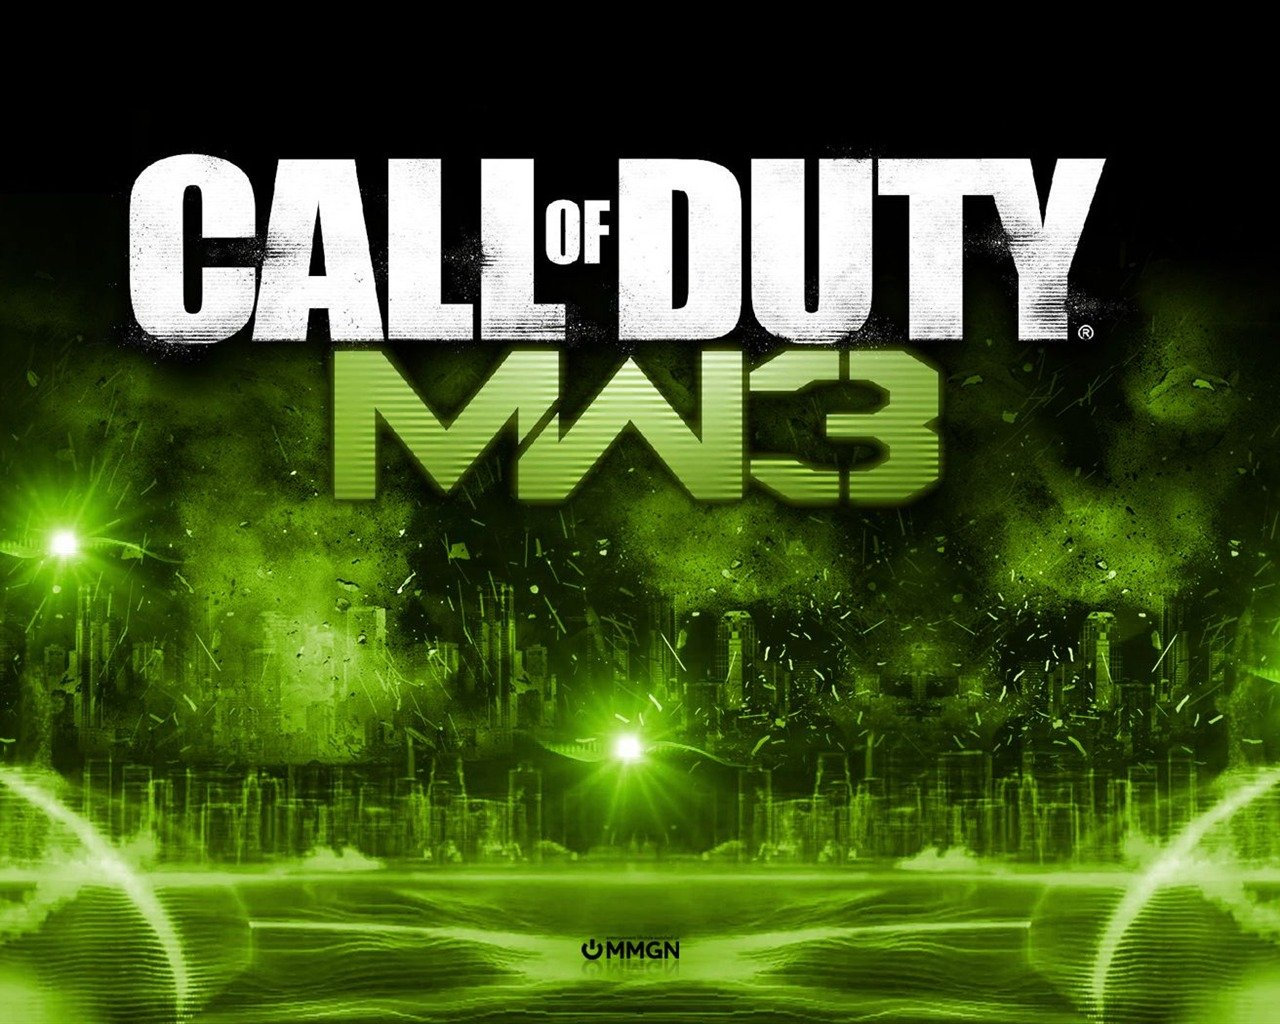 Wallpaper Download   Call of Duty MW3 HD wallpapers   Game Wallpapers 1280x1024